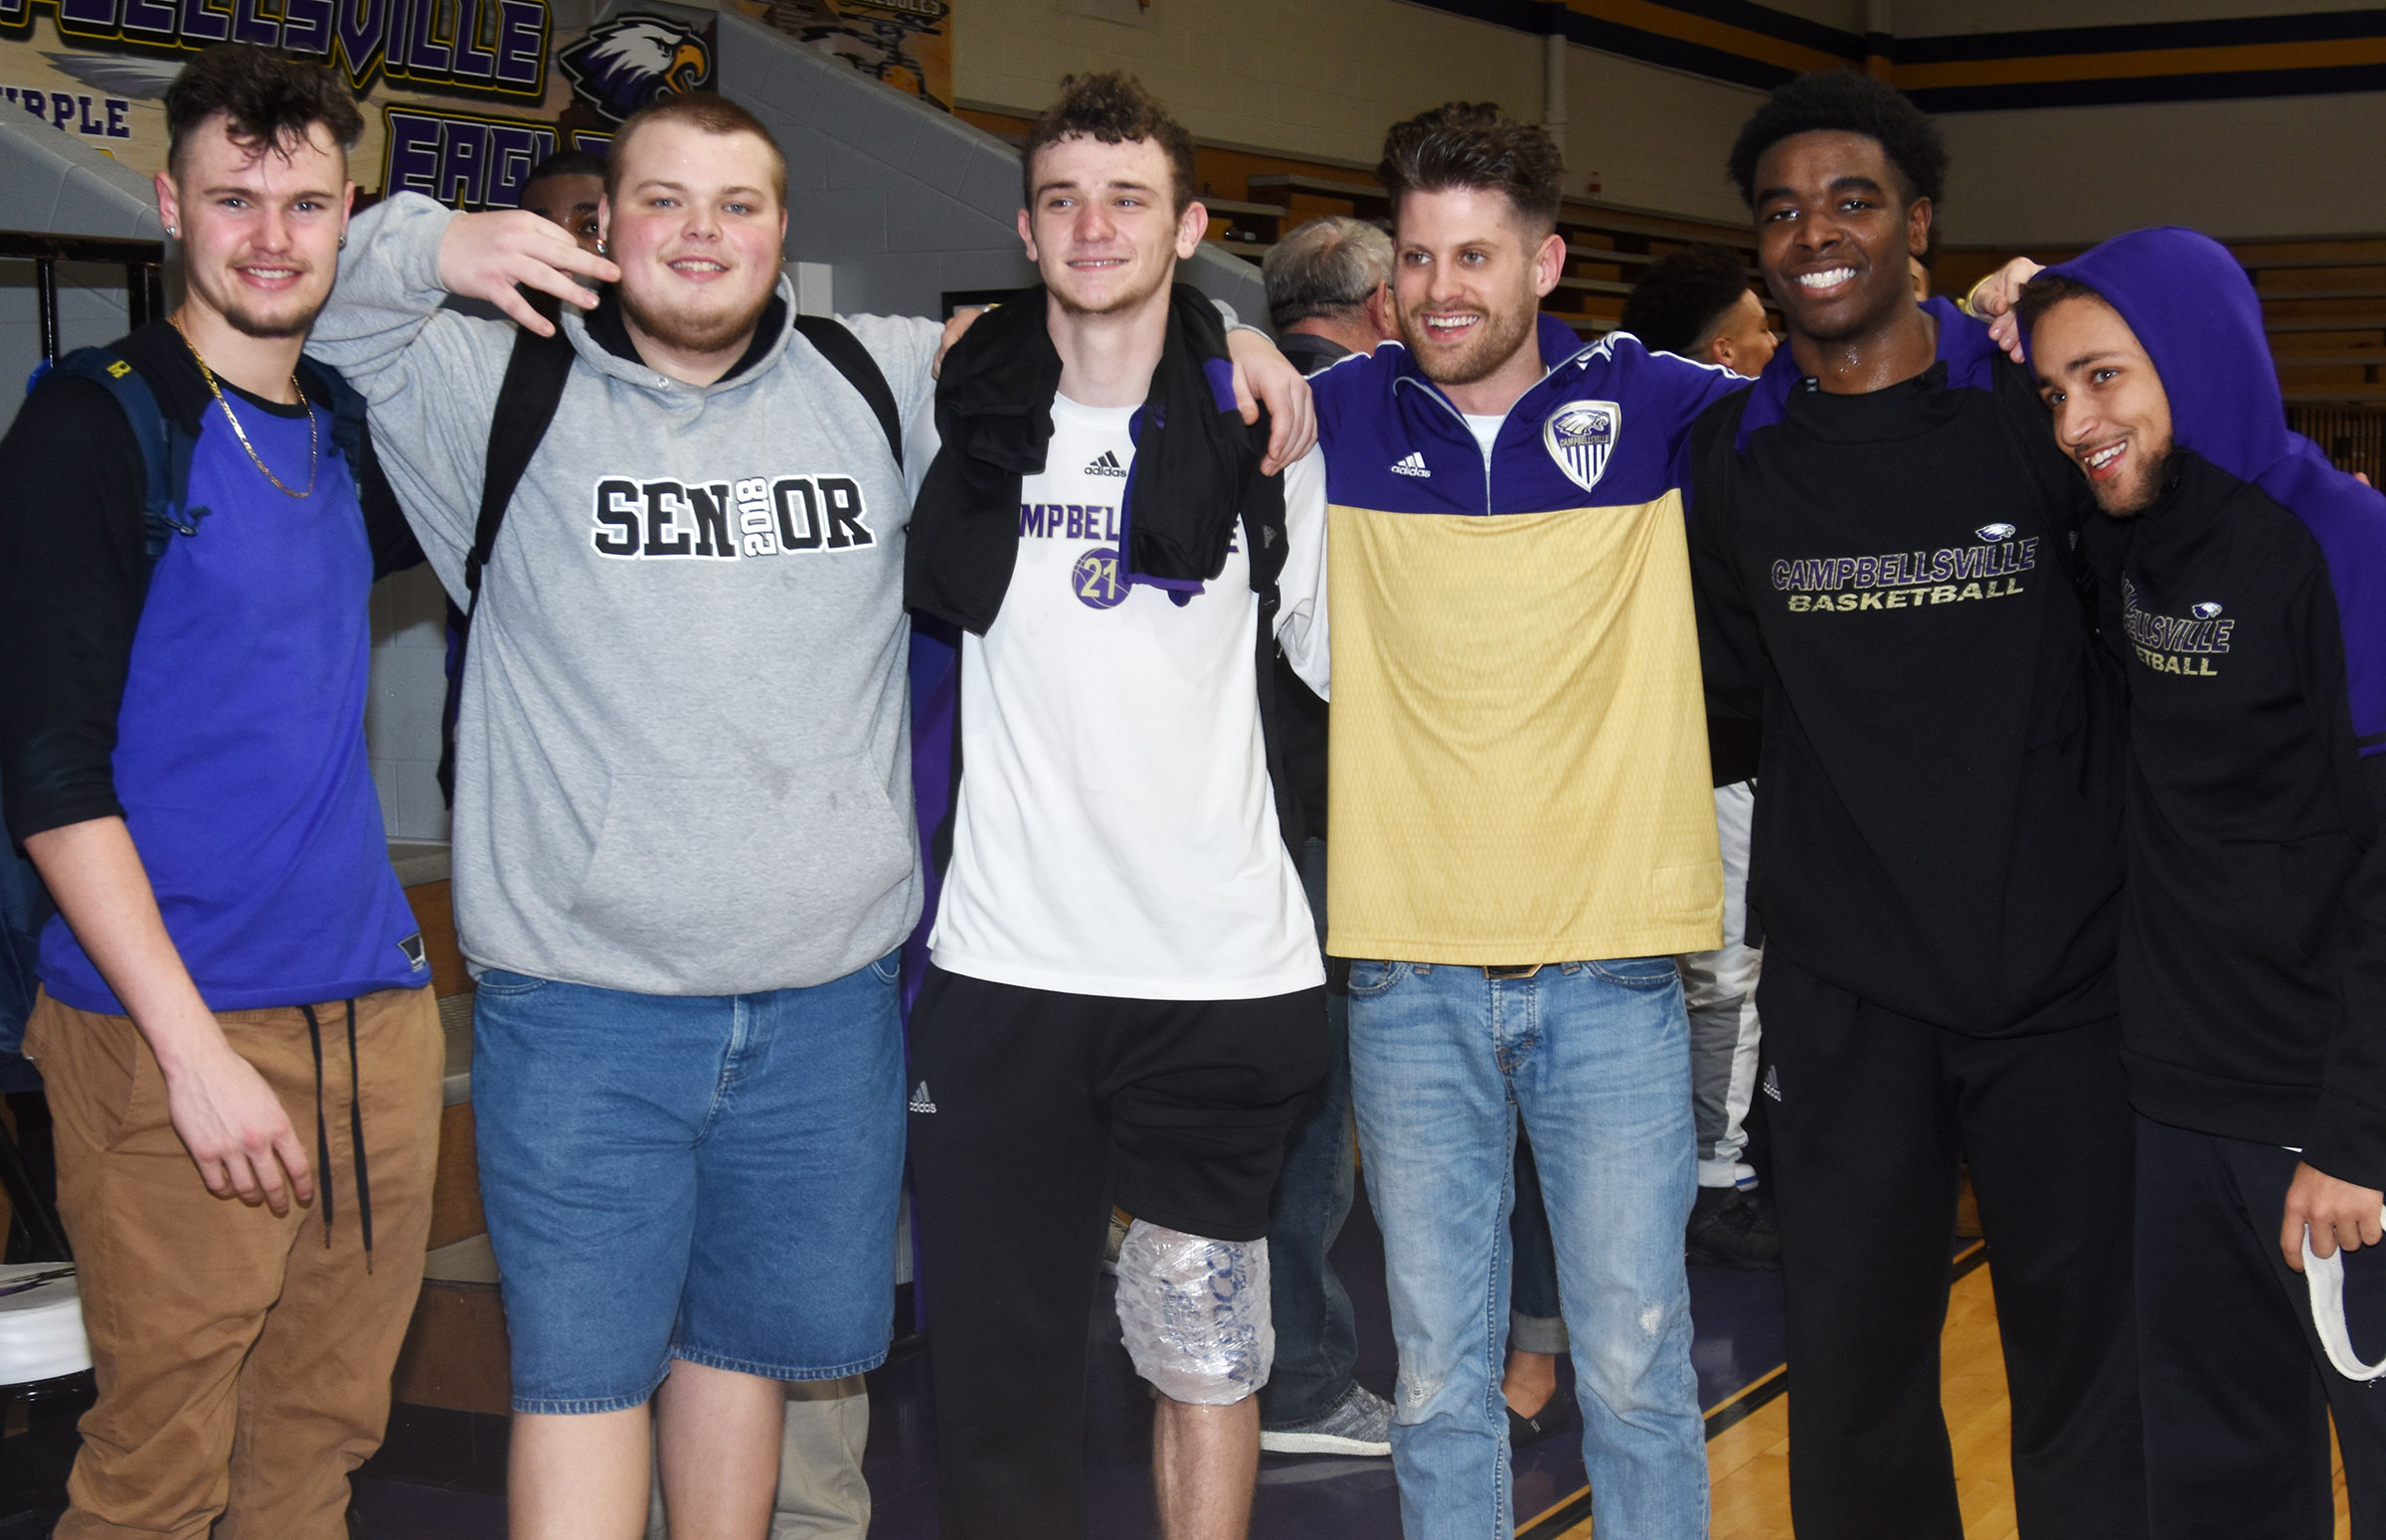 CHS seniors pose for a photo with instructional assistant Matthew Schmuck. From left are Logan Cole, Toyse Cox, Connor Wilson, Schmuck, Chanson Atkinson and Ethan Lay.